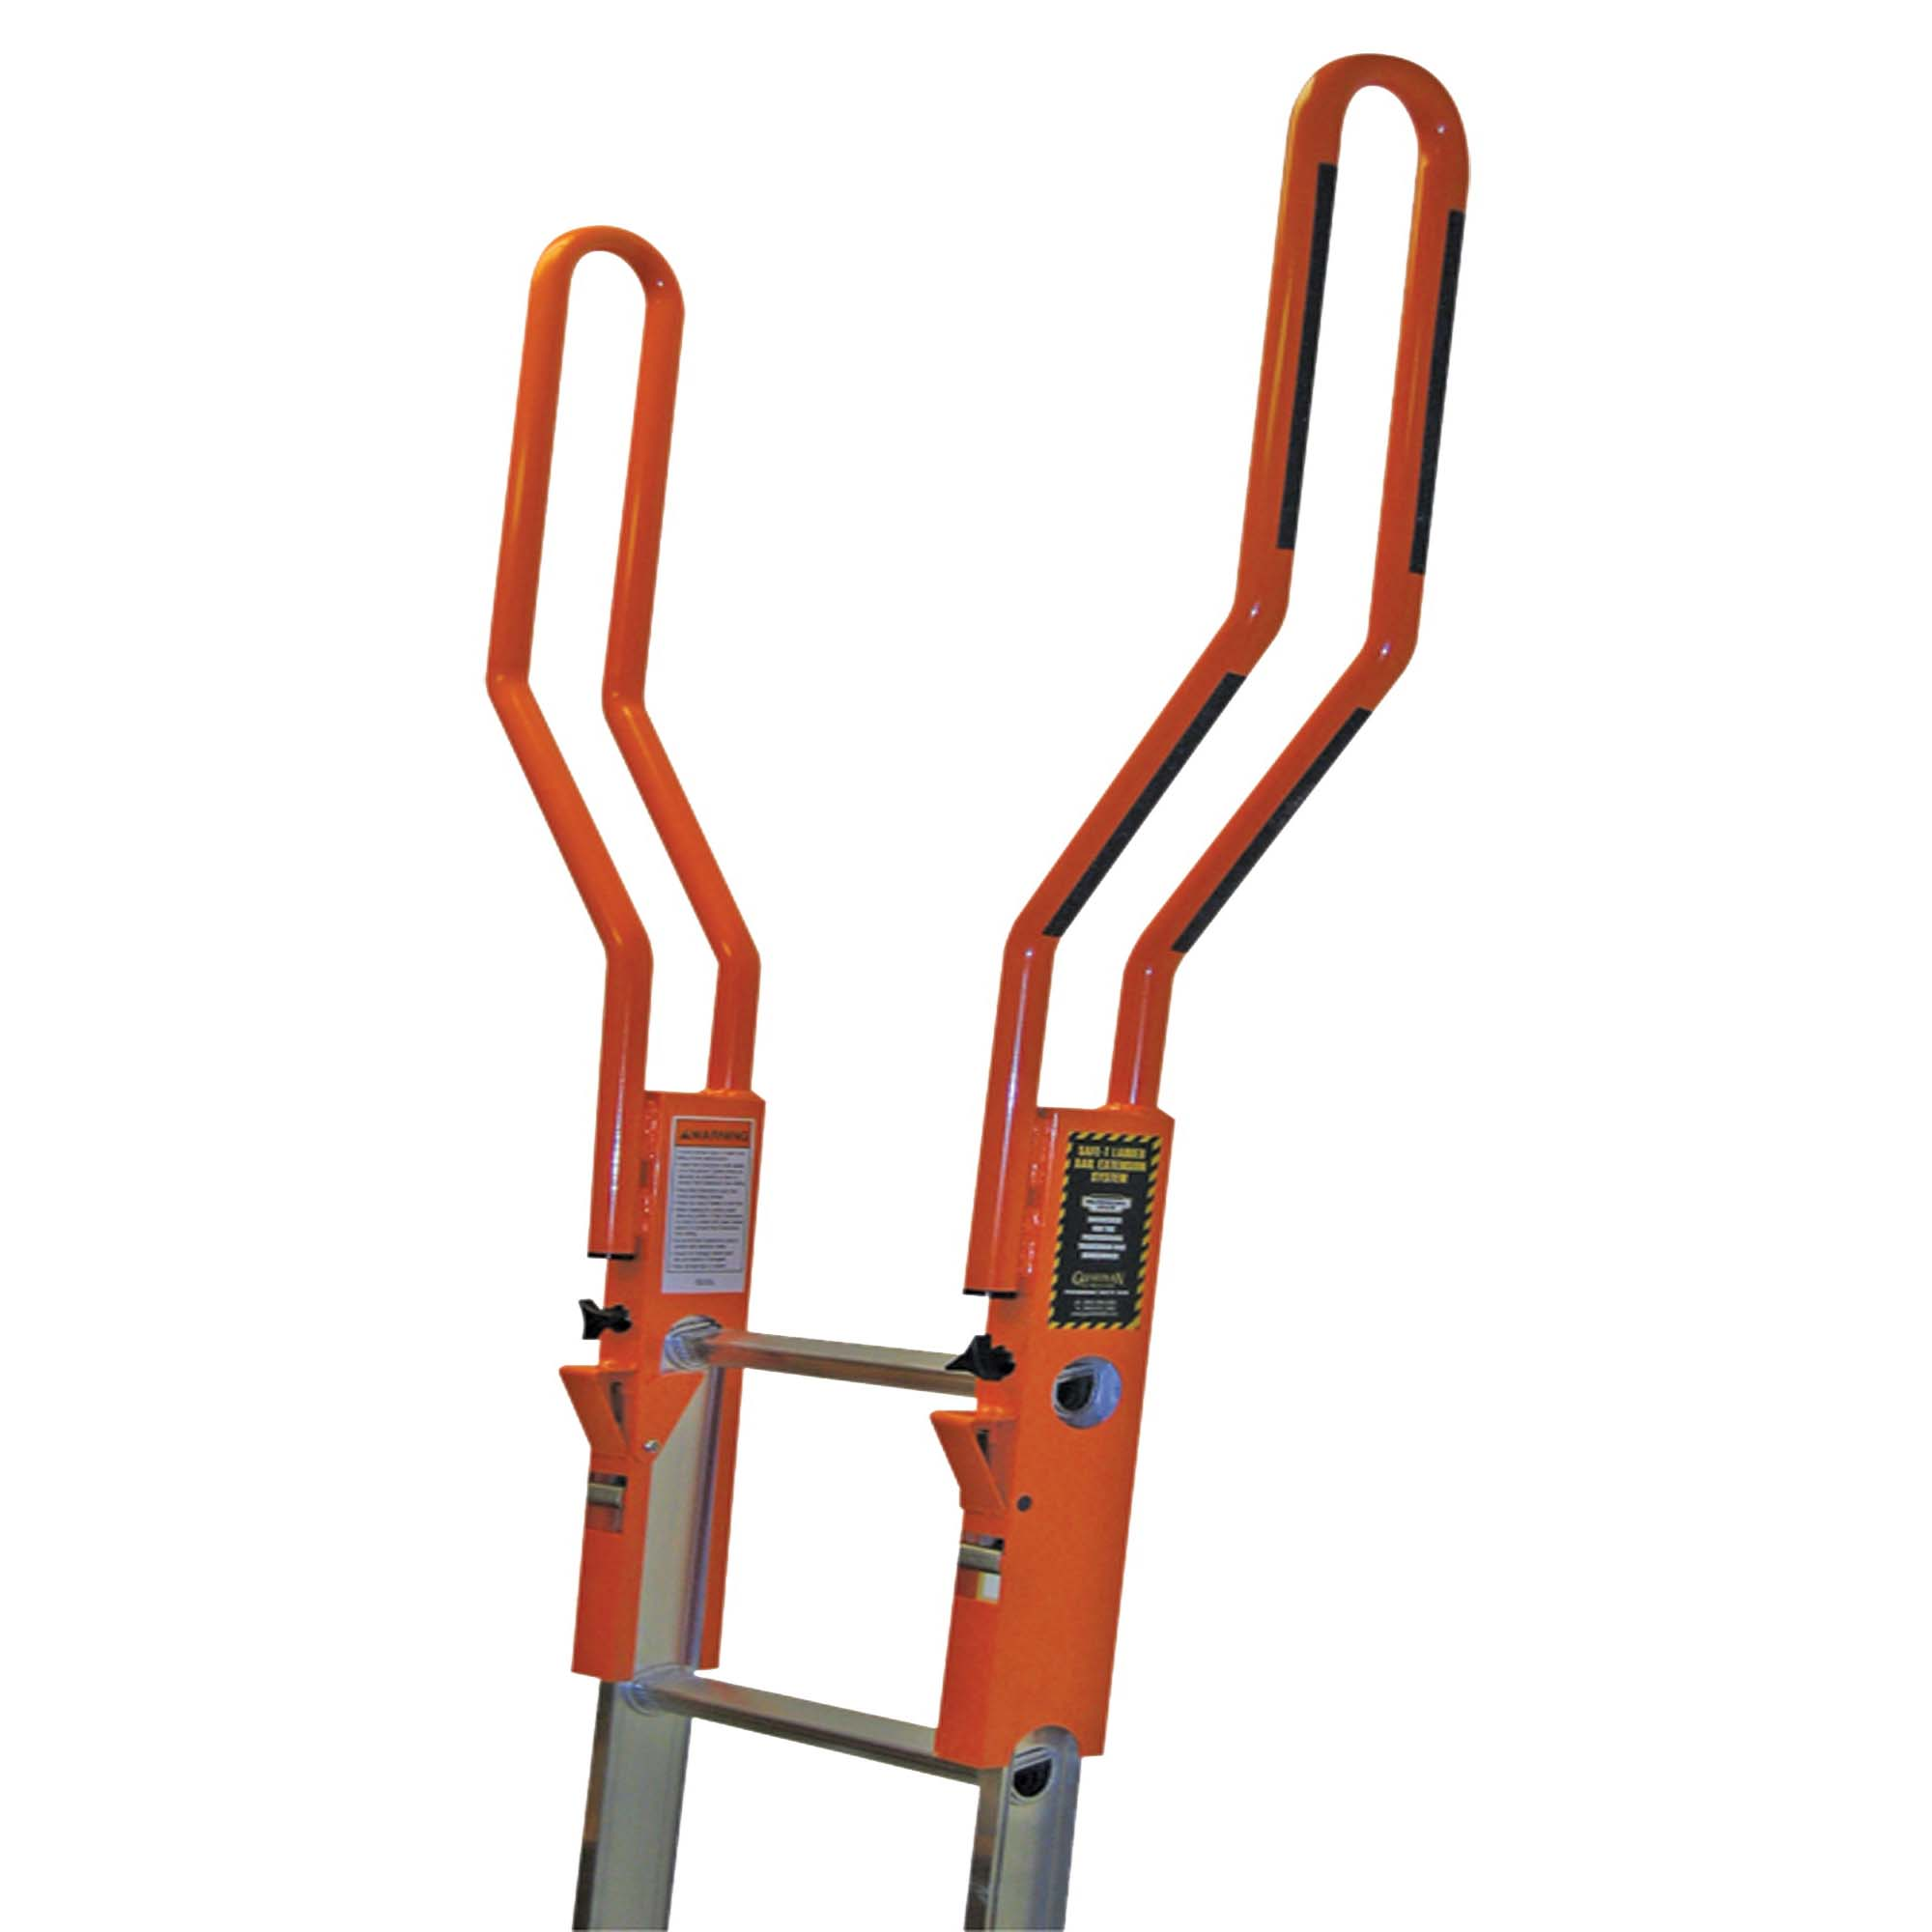 Picture of Guardian Fall Protection Safe-T 10800 Ladder Extension System, Aluminum, Black/Orange, Powder-Coated